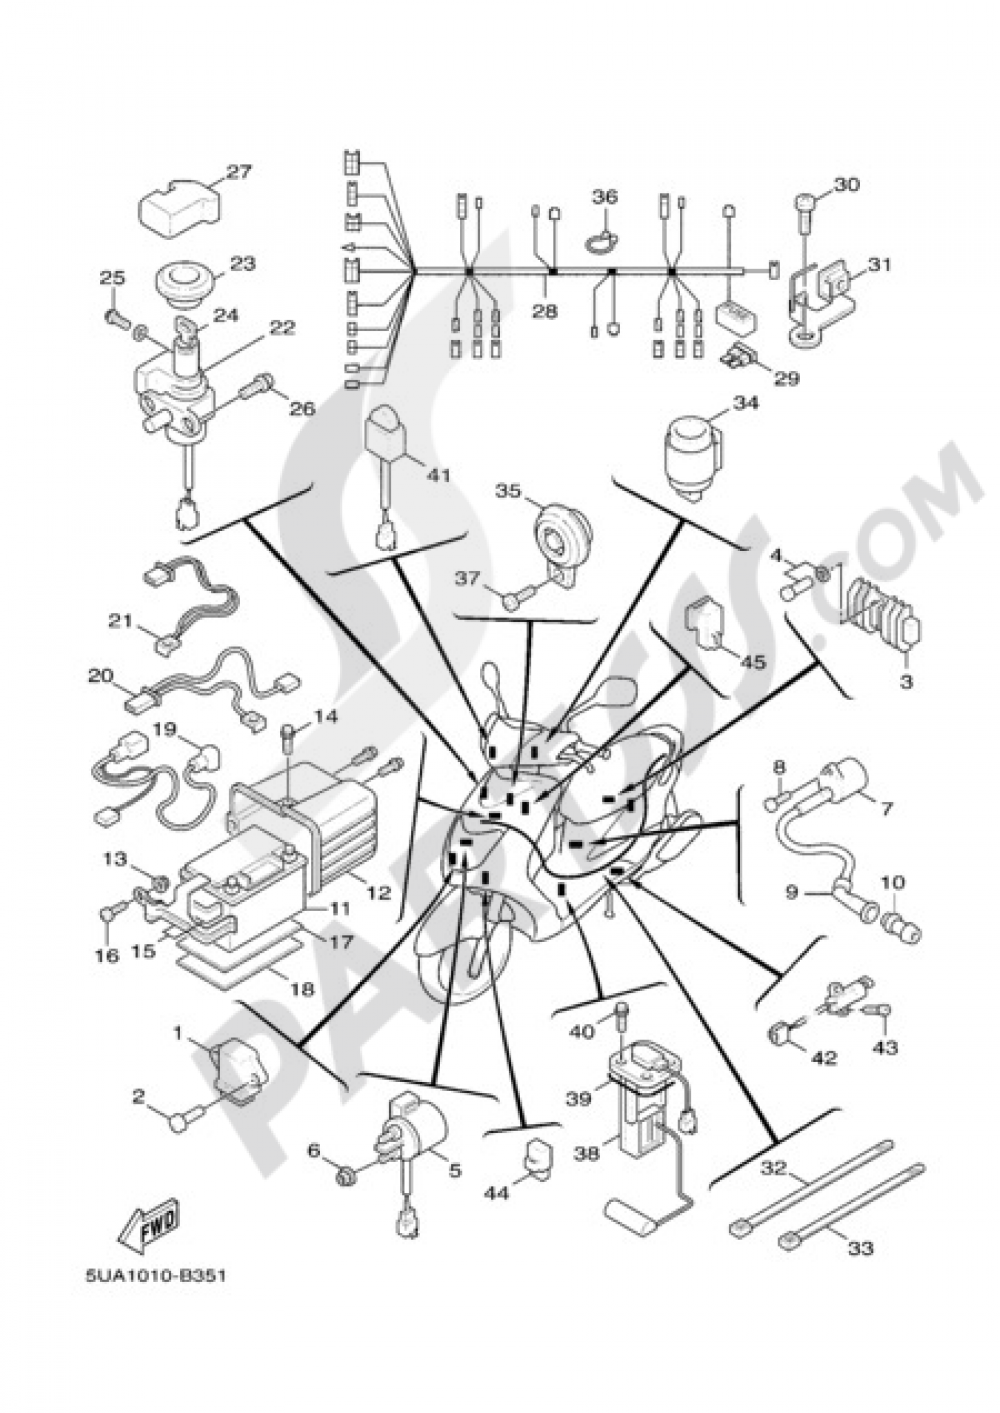 yamaha r6 wiring diagram pdf imageresizertool com